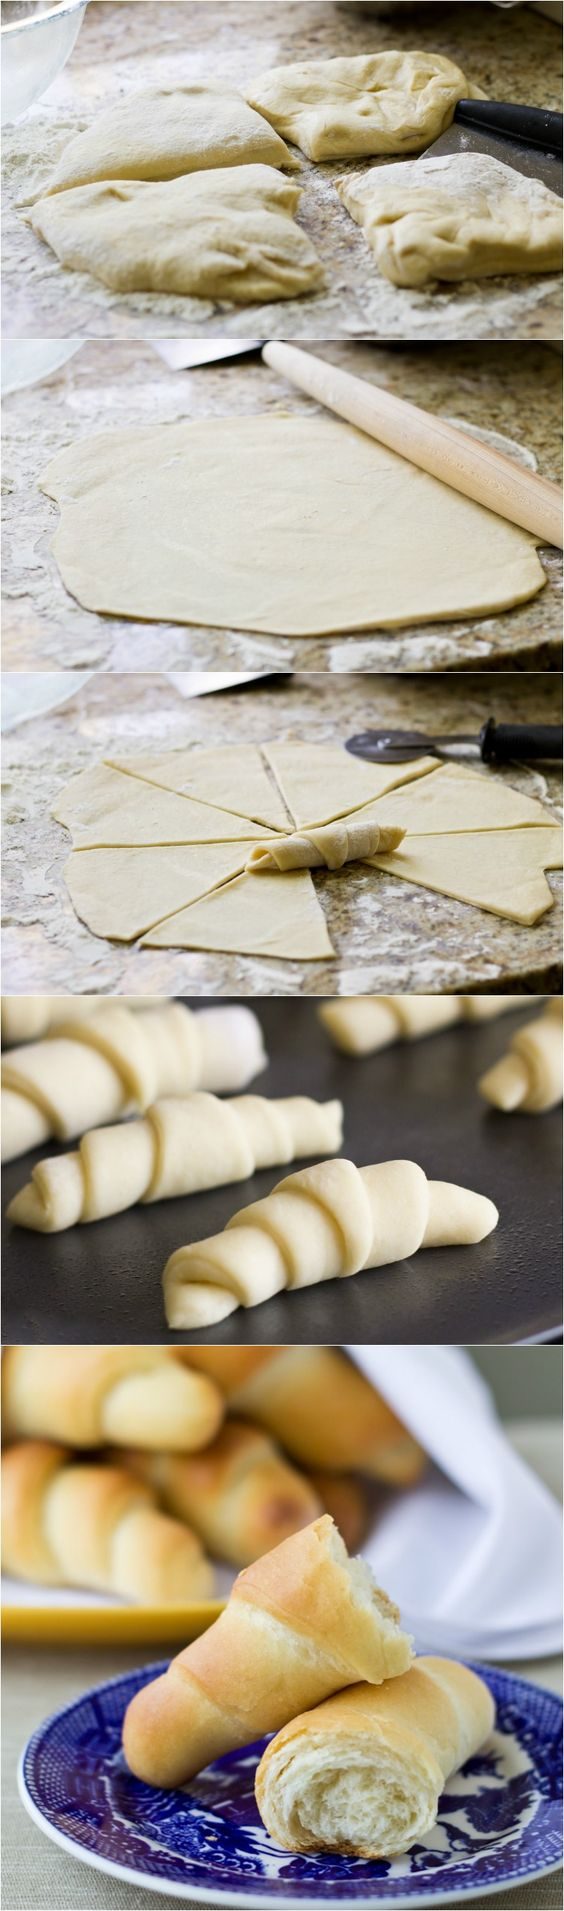 Grandma's Homemade Crescent Rolls - These are far beyond anything you can pop out of a can!